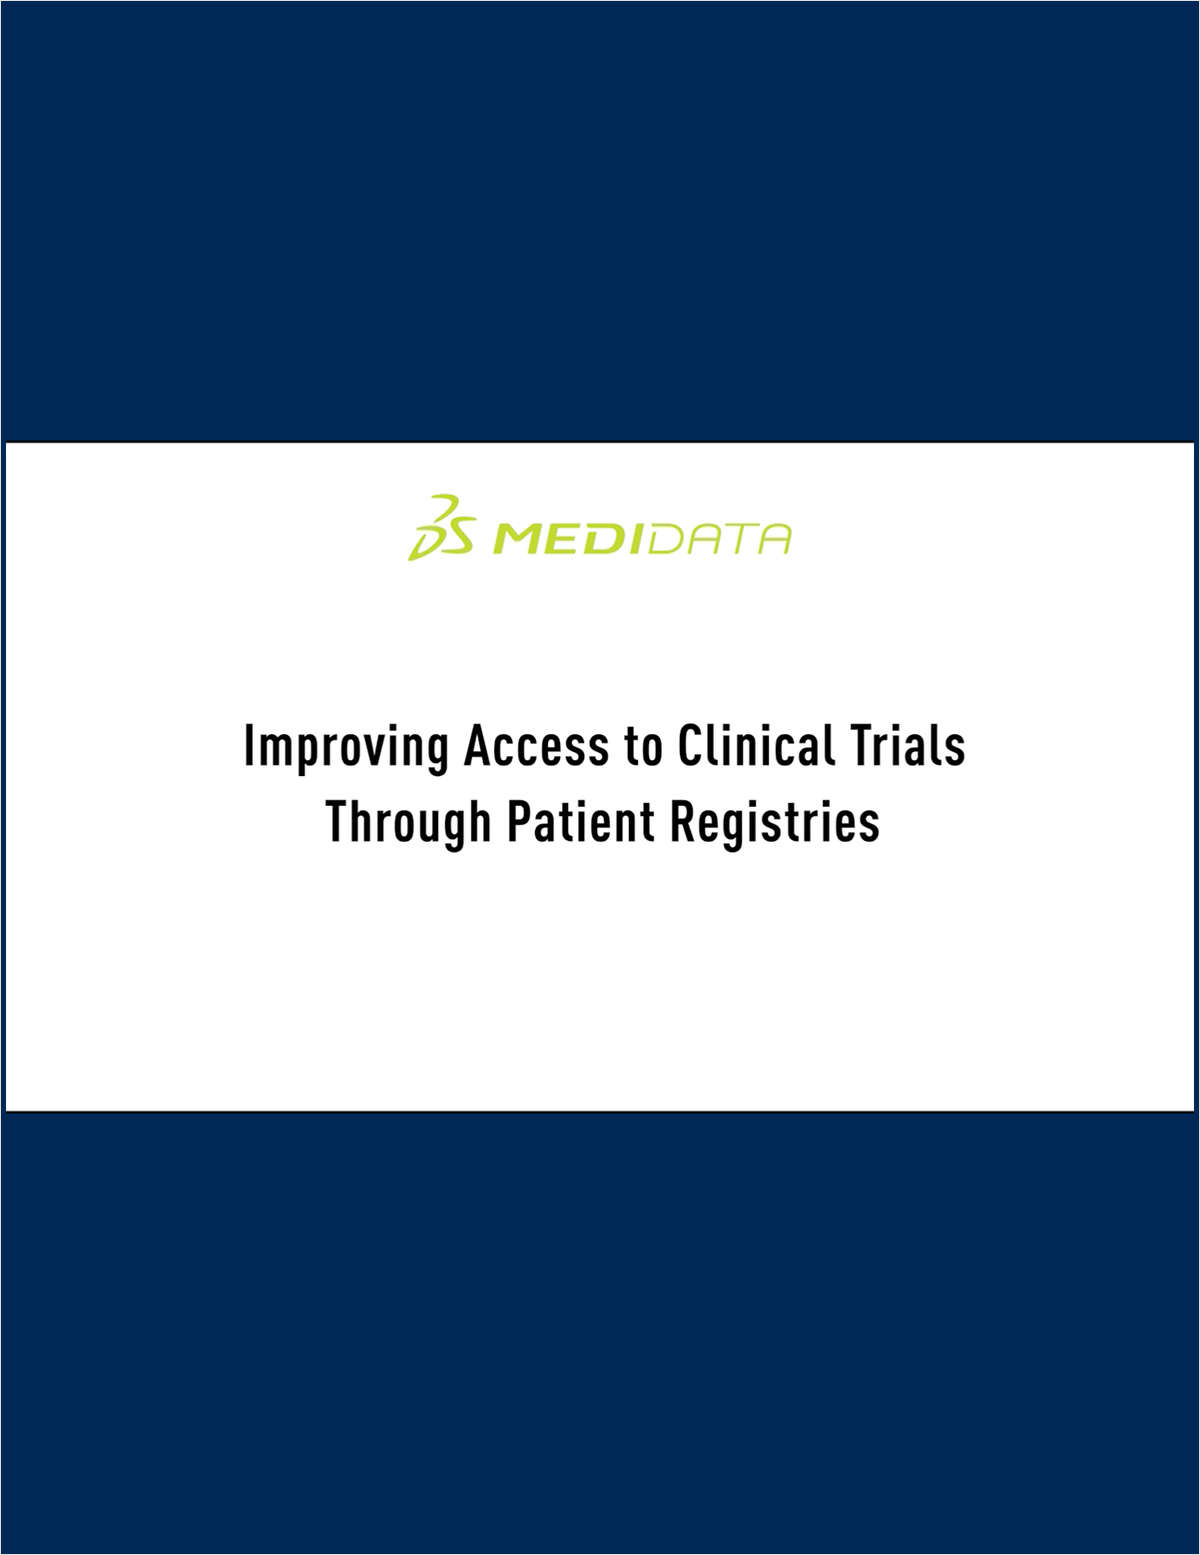 Improving Access to Clinical Trials Through Patient Registries